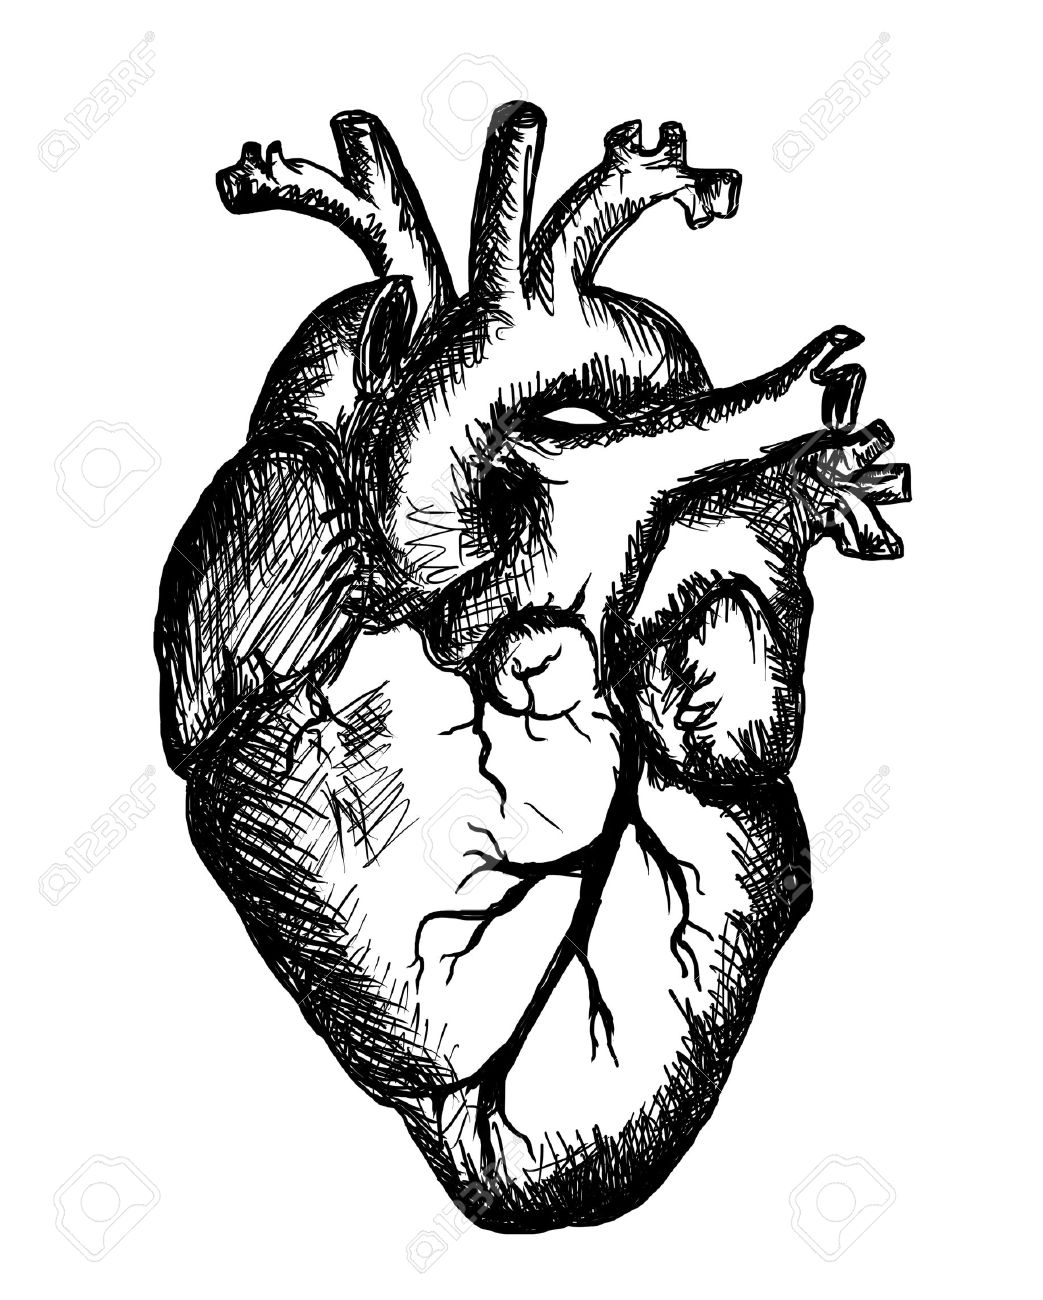 1043x1300 Human Heart Sketch With Label Human Heart Sketch Diagram Free